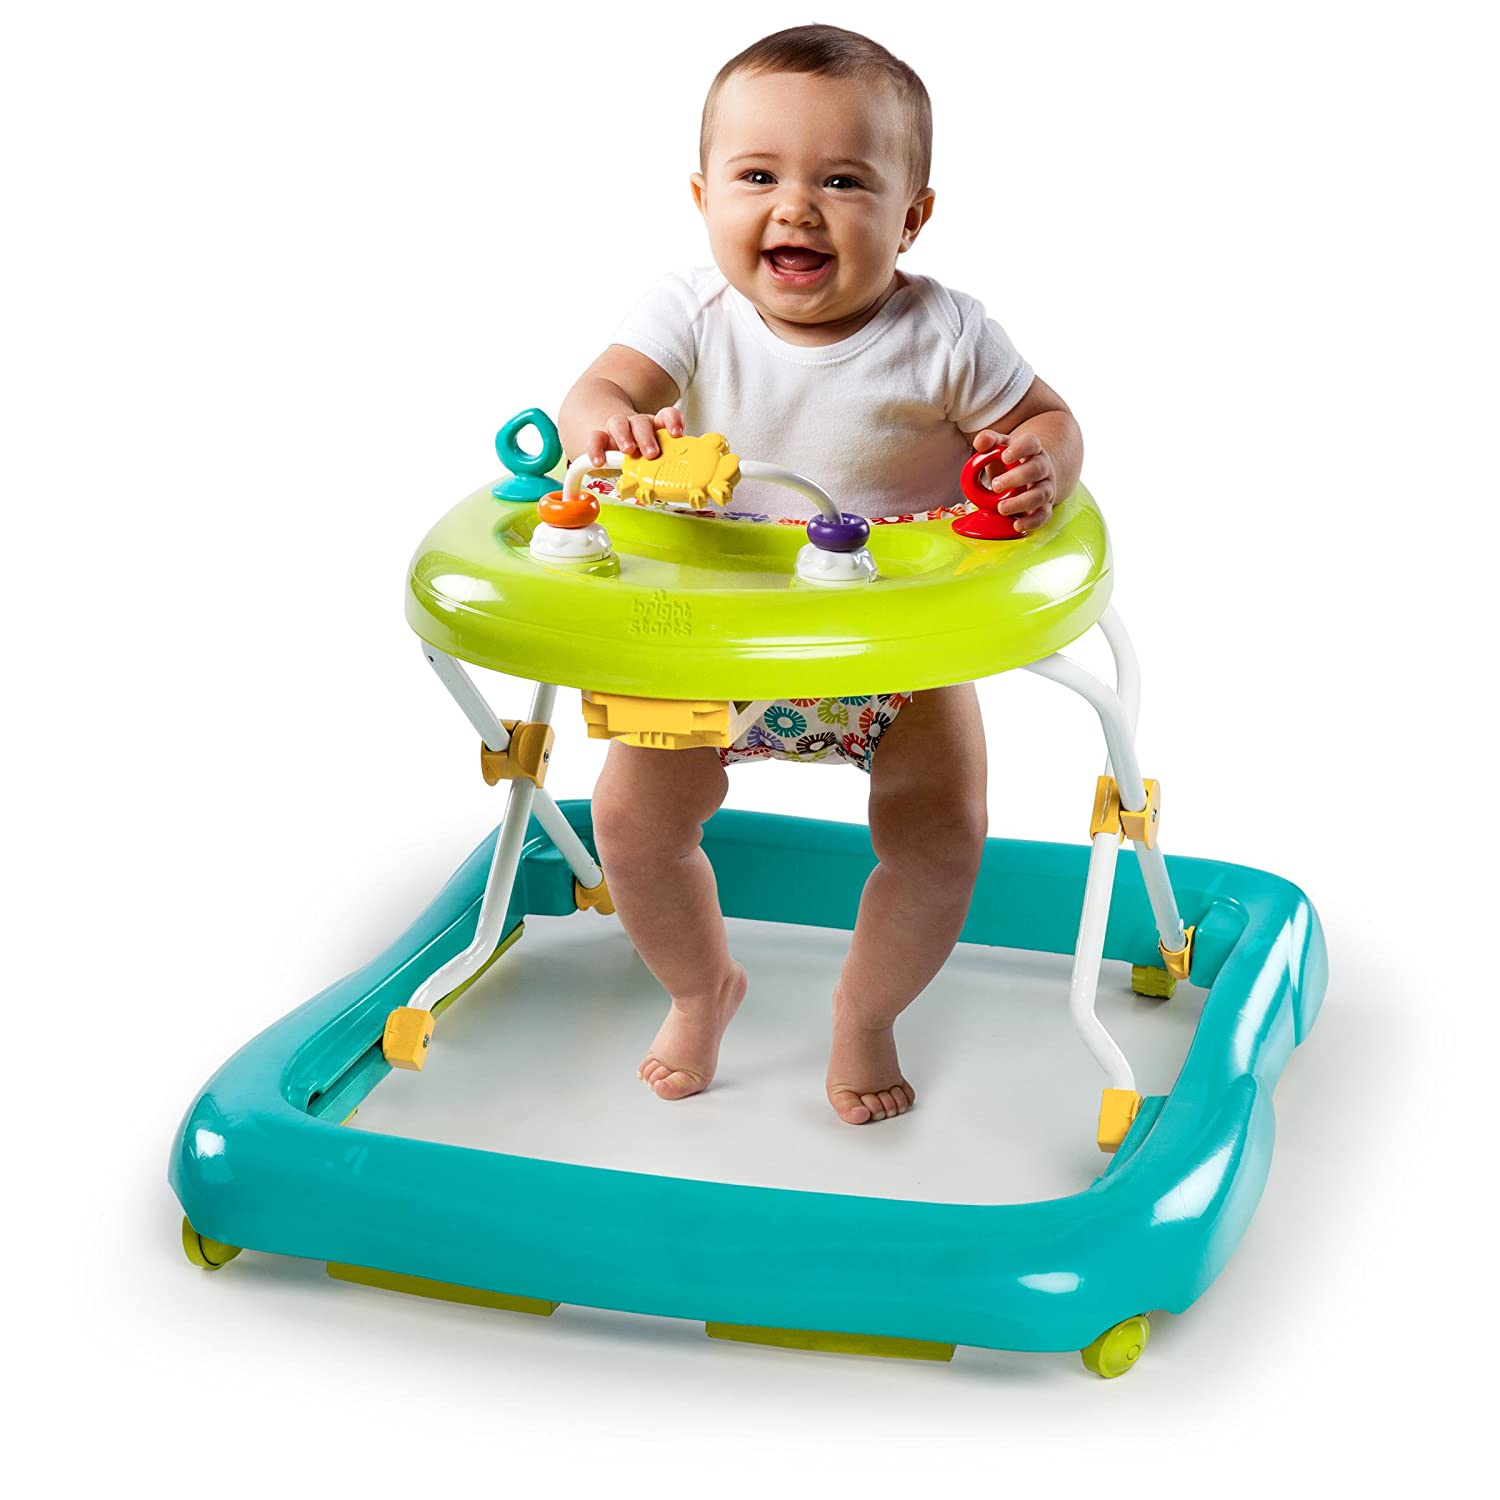 Bright Starts Pattern Pals Baby Walker Amazon Toys & Games